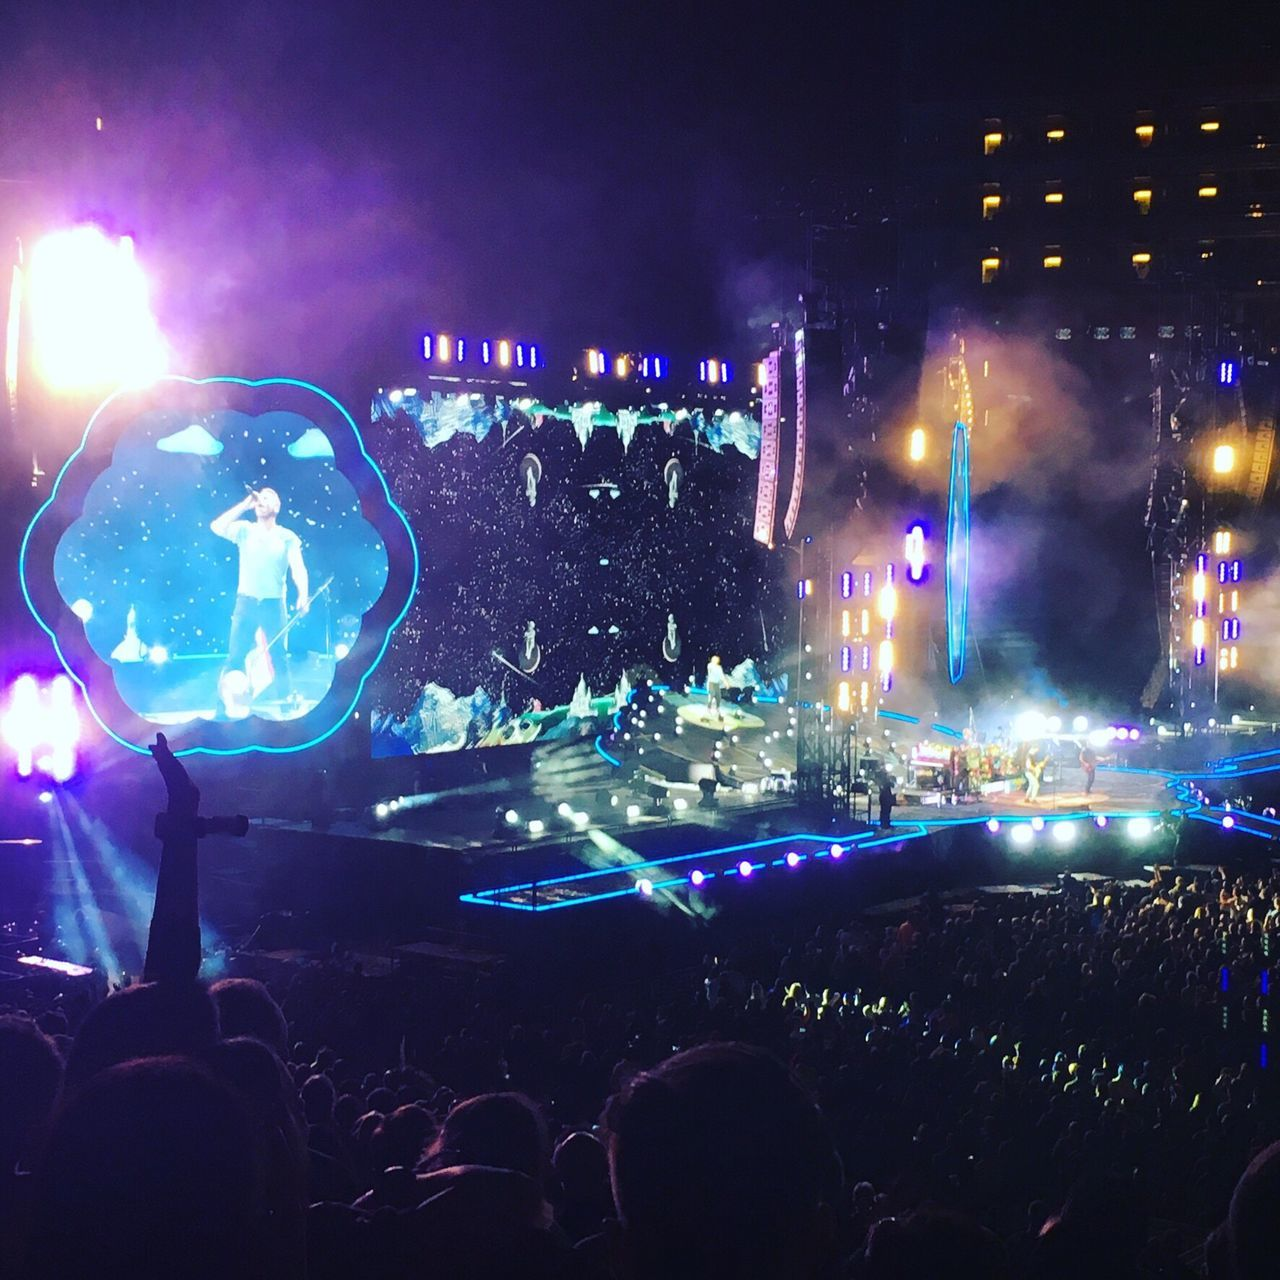 Coldplay Coldplay Concert  COLDPLAY ♥ Illuminated Performance AHFODtour 2016 Levi's Stadium San Francisco Music Brings Us Together